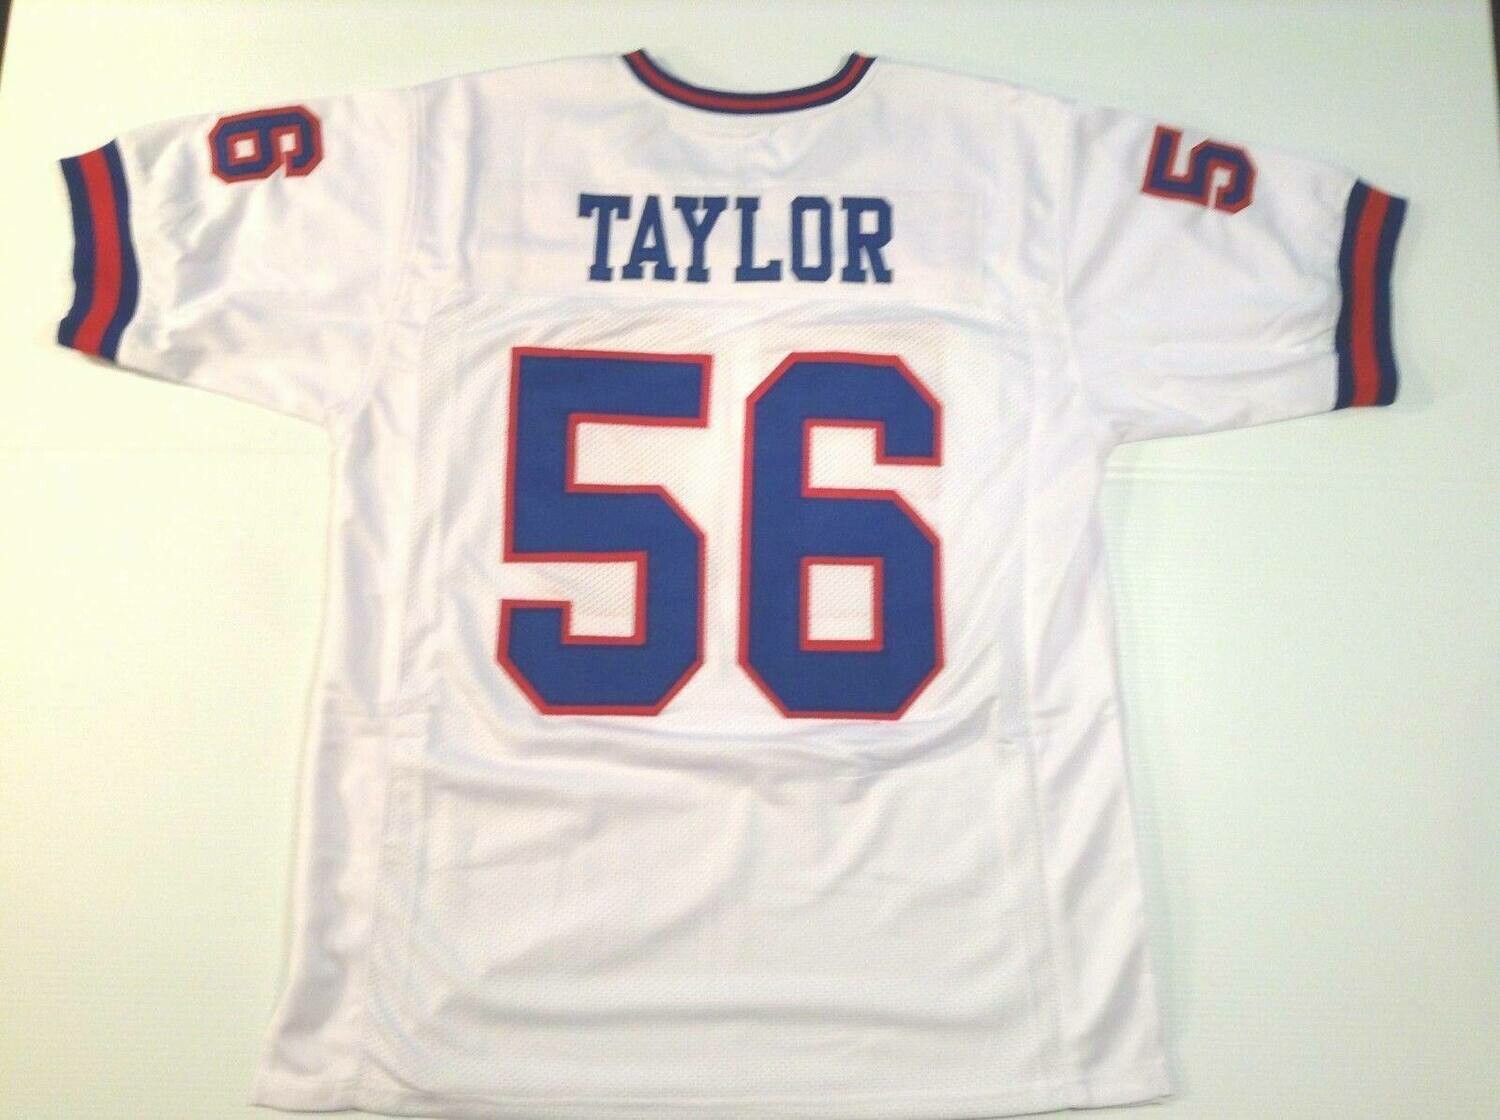 UNSIGNED CUSTOM Sewn Stitched Lawrence Taylor White Jersey